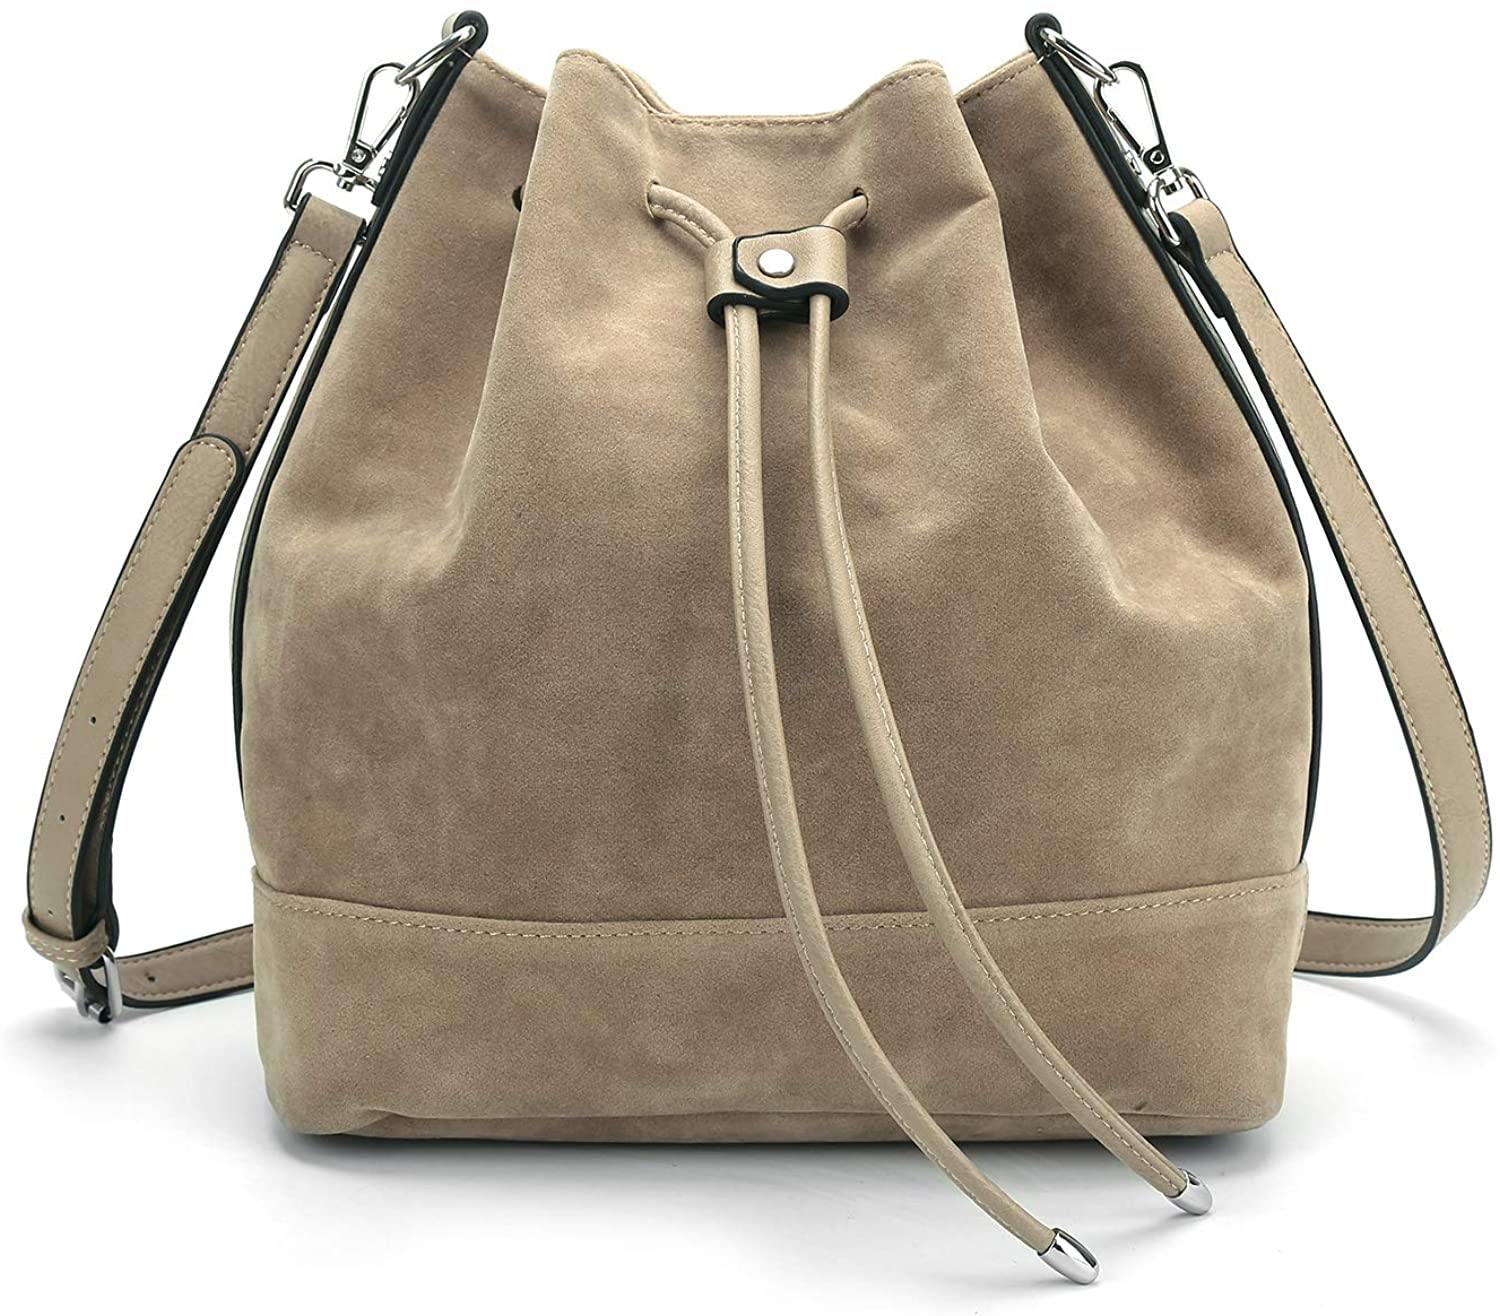 Cheneal Bucket Bag